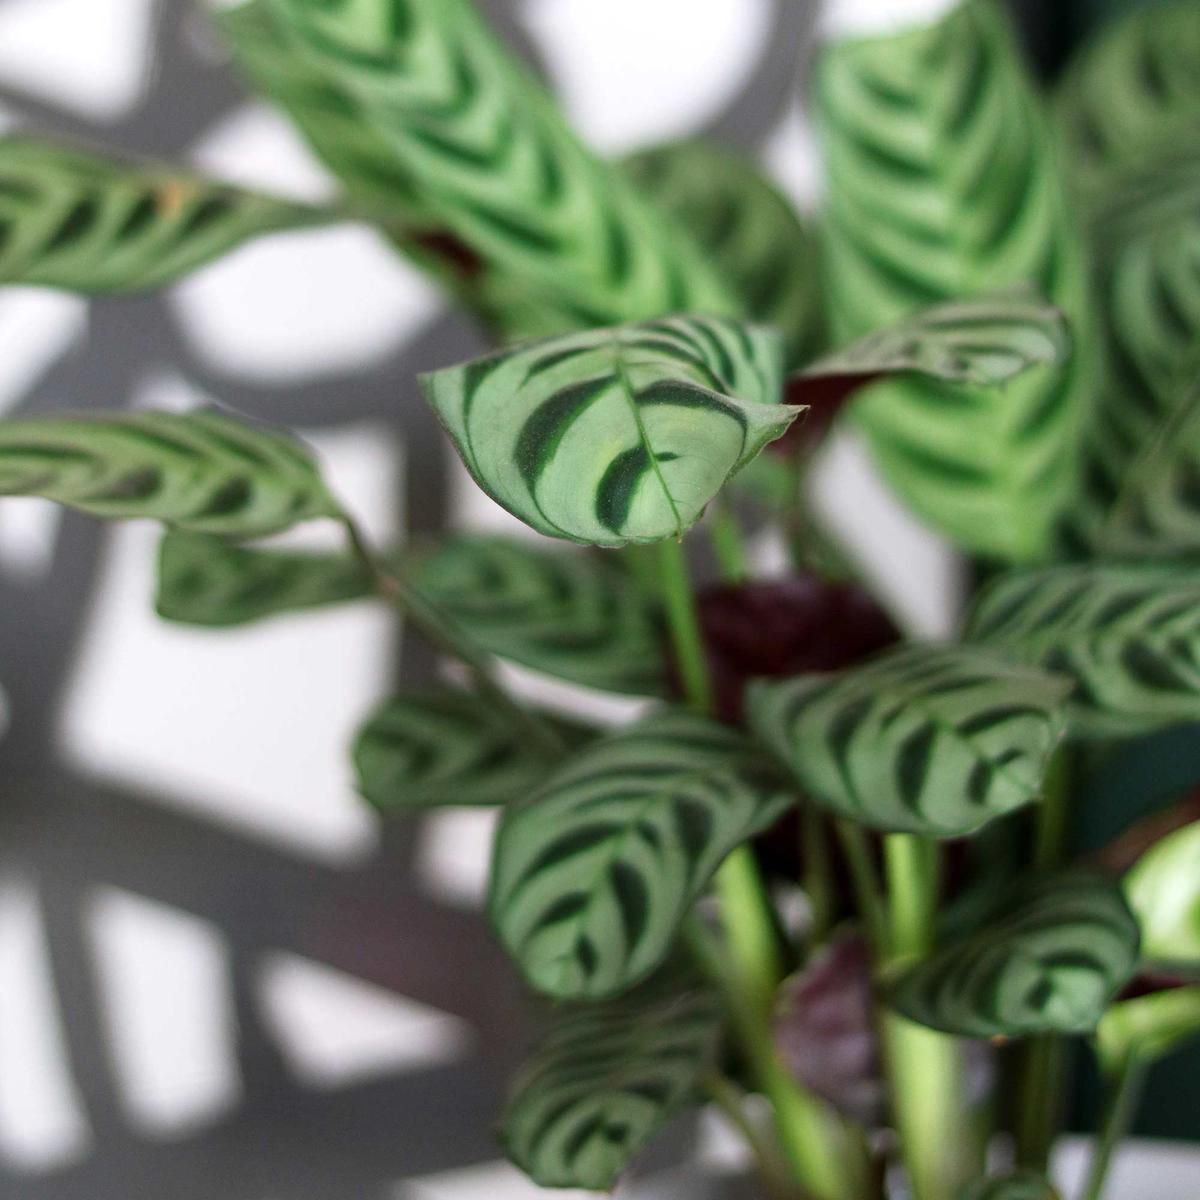 Calathea Patterned Plants My Attic